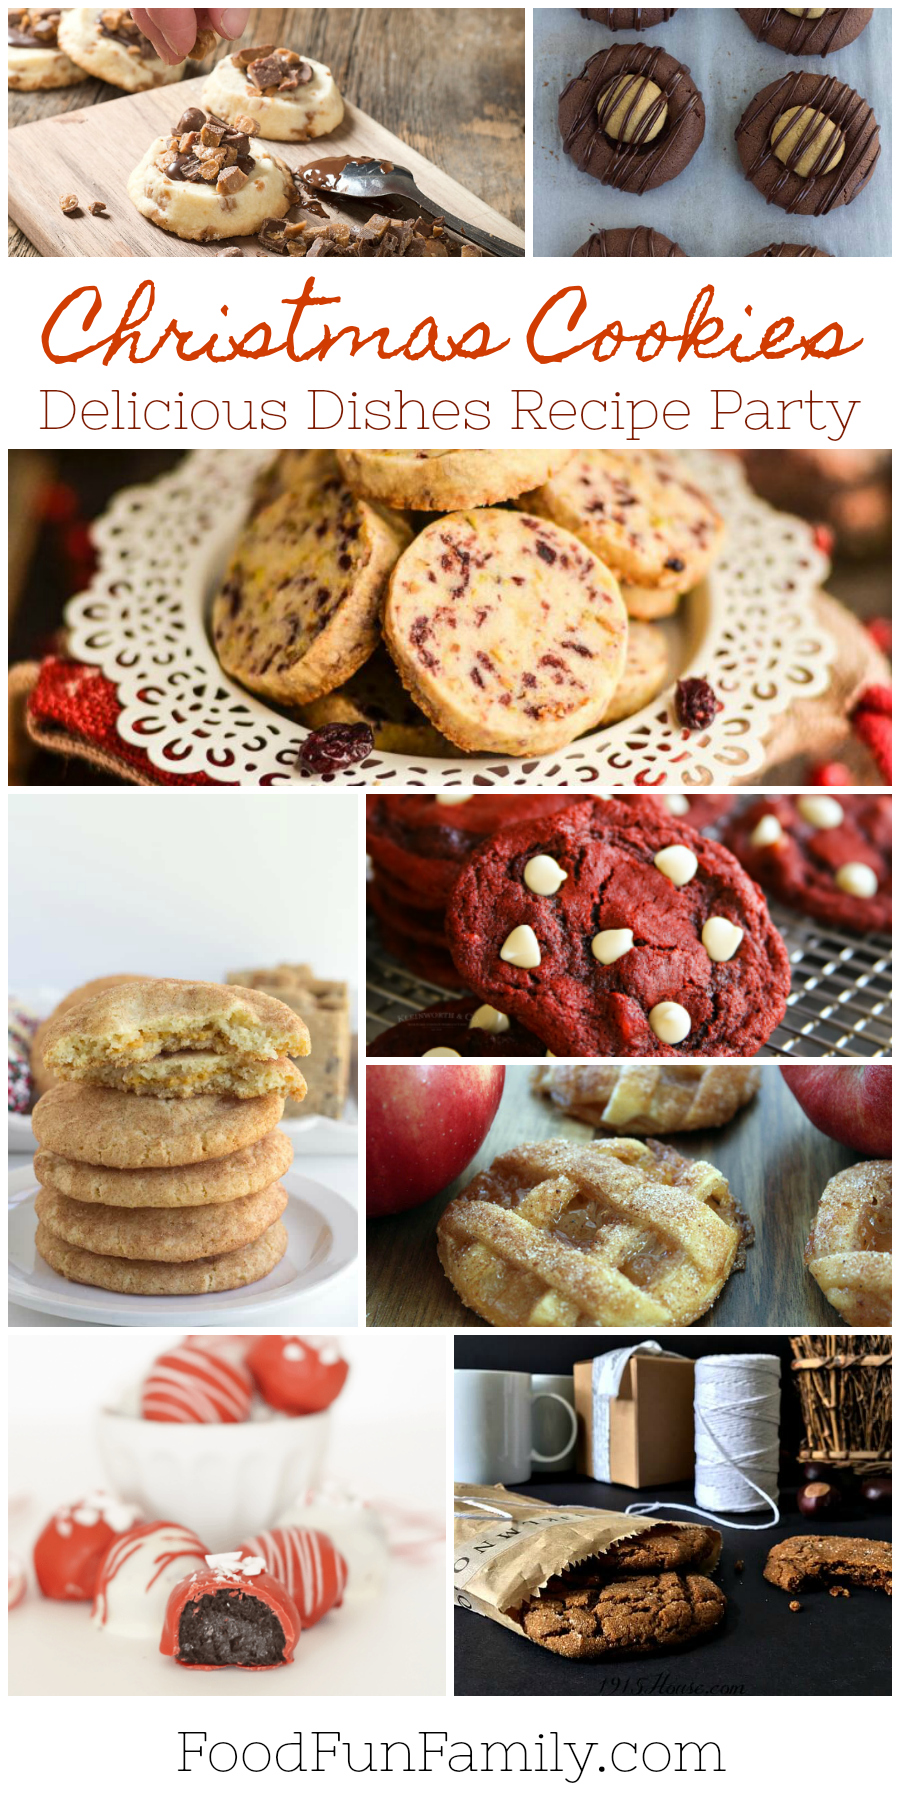 Delicious Christmas Cookies - a Delicious Dishes Recipe Party from Food Fun Family